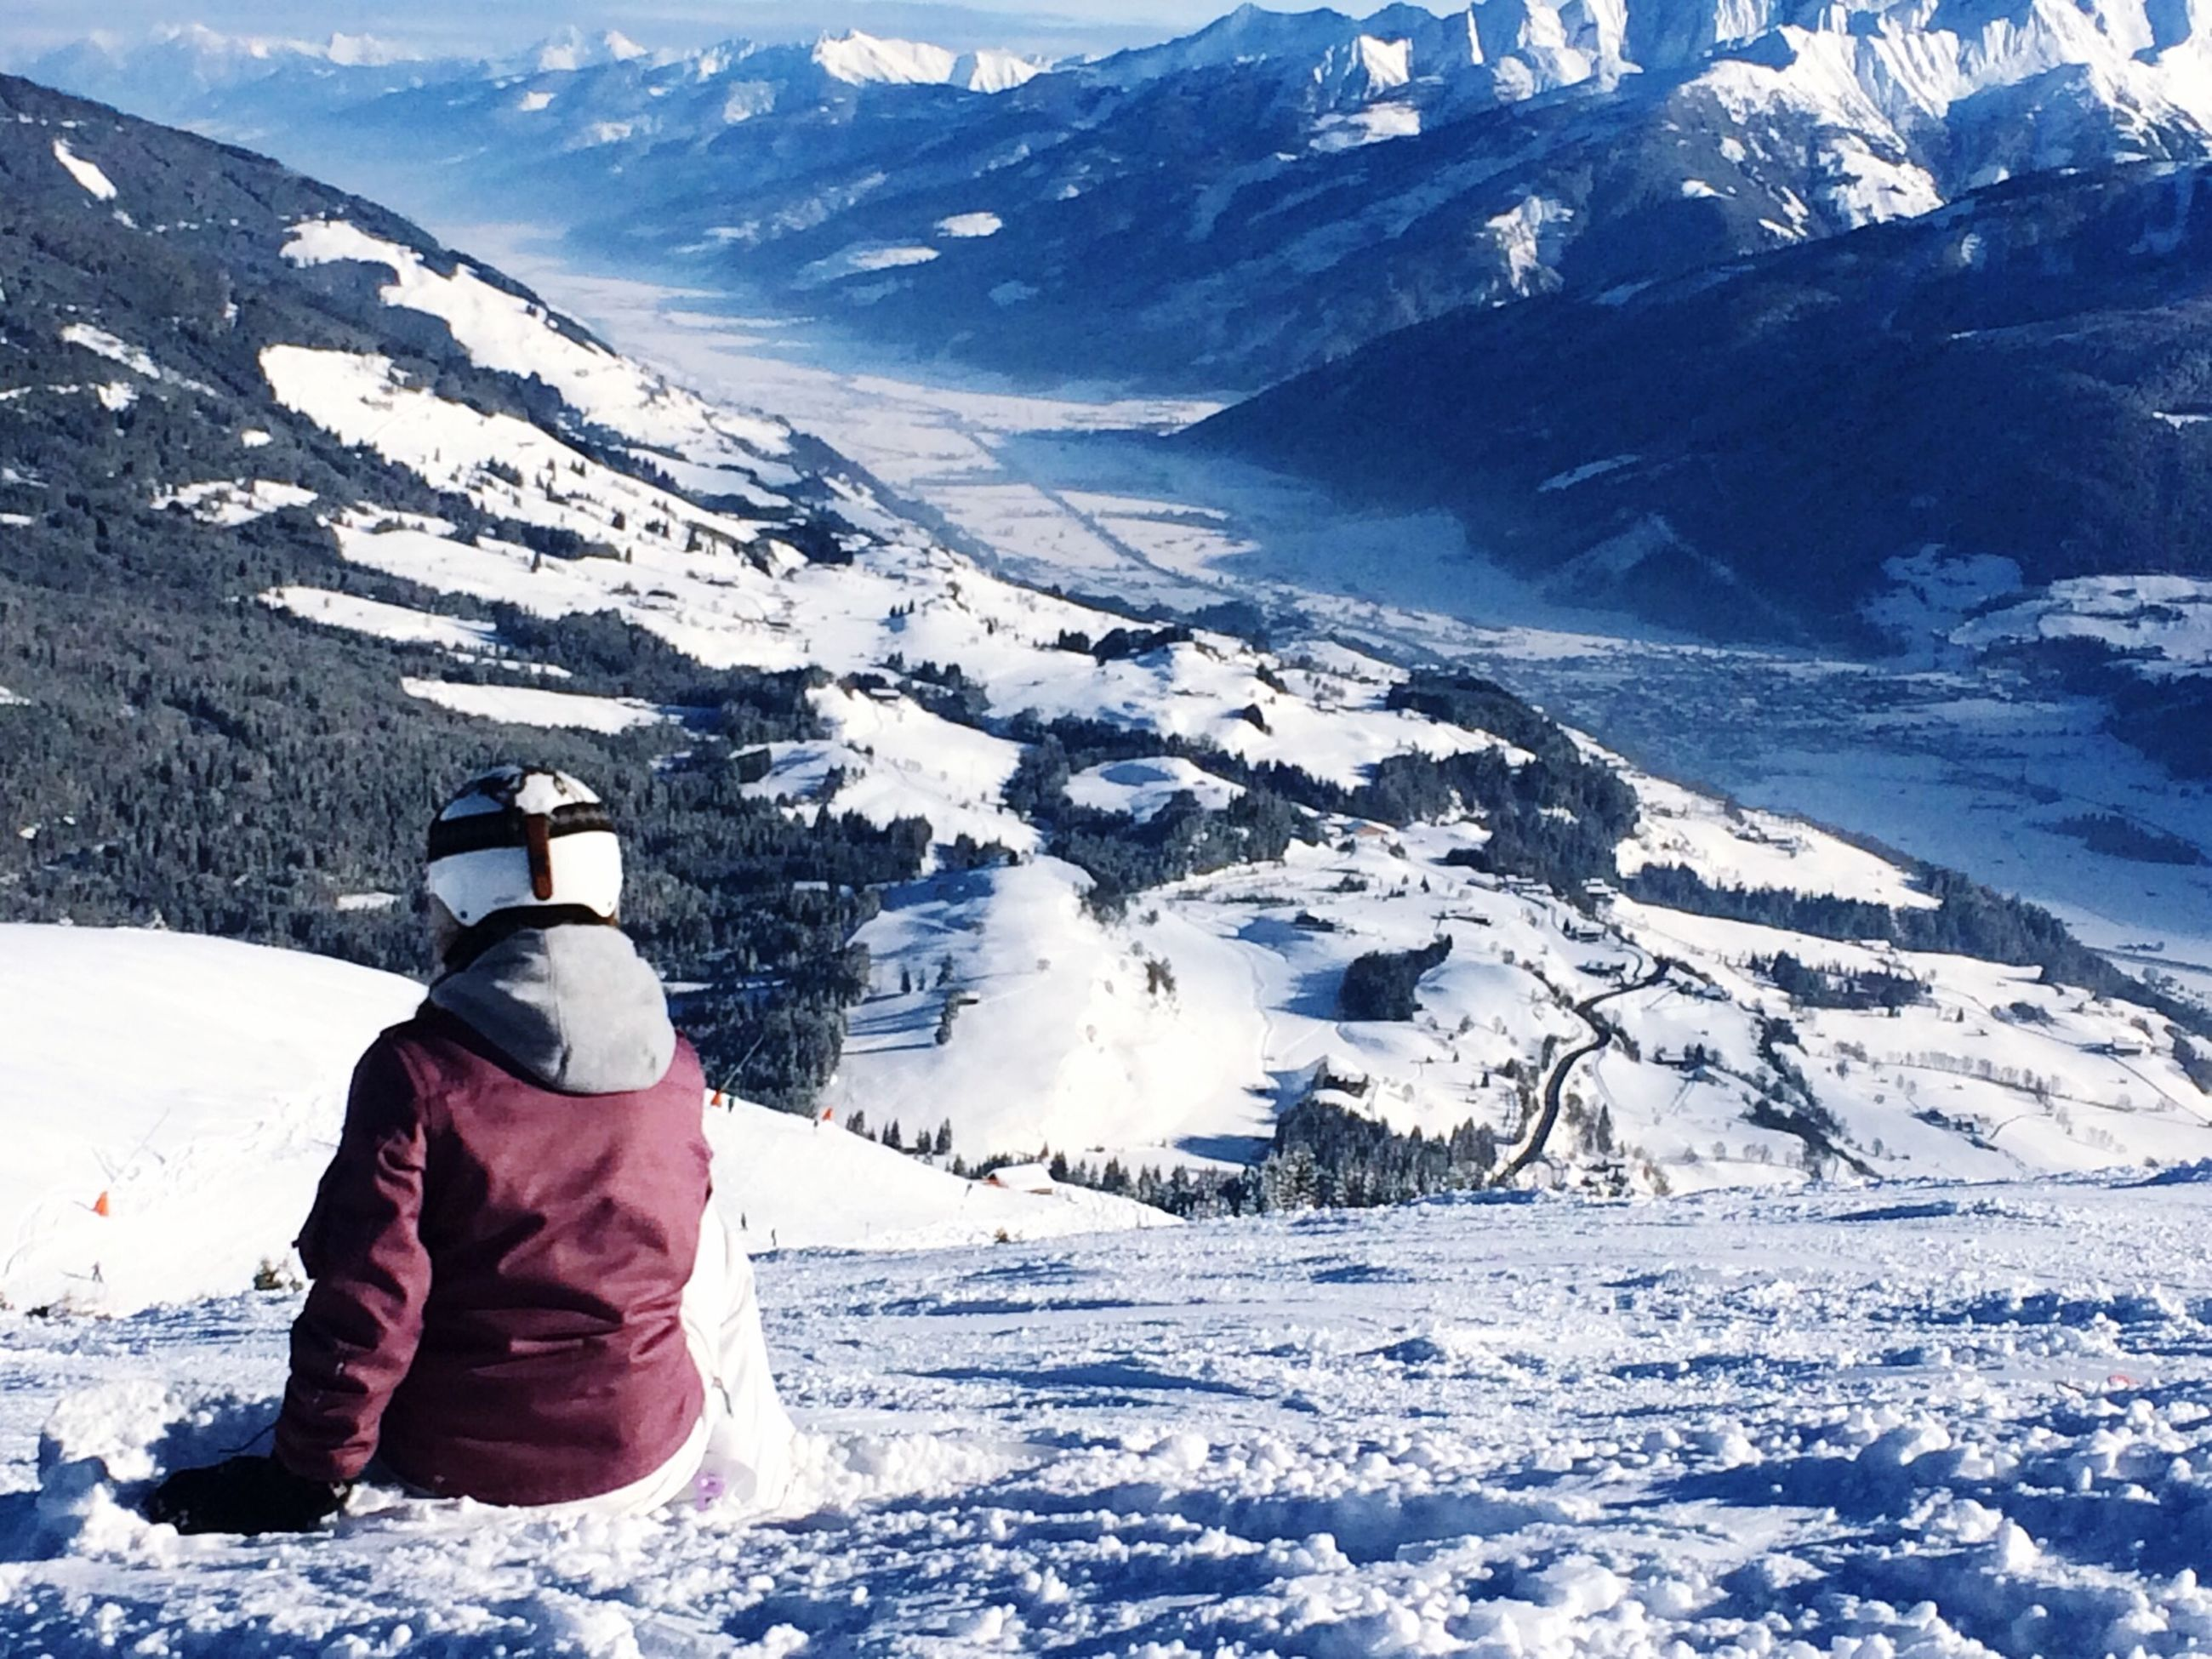 snow, winter, cold temperature, season, mountain, weather, snowcapped mountain, tranquil scene, covering, landscape, tranquility, scenics, frozen, mountain range, beauty in nature, nature, leisure activity, warm clothing